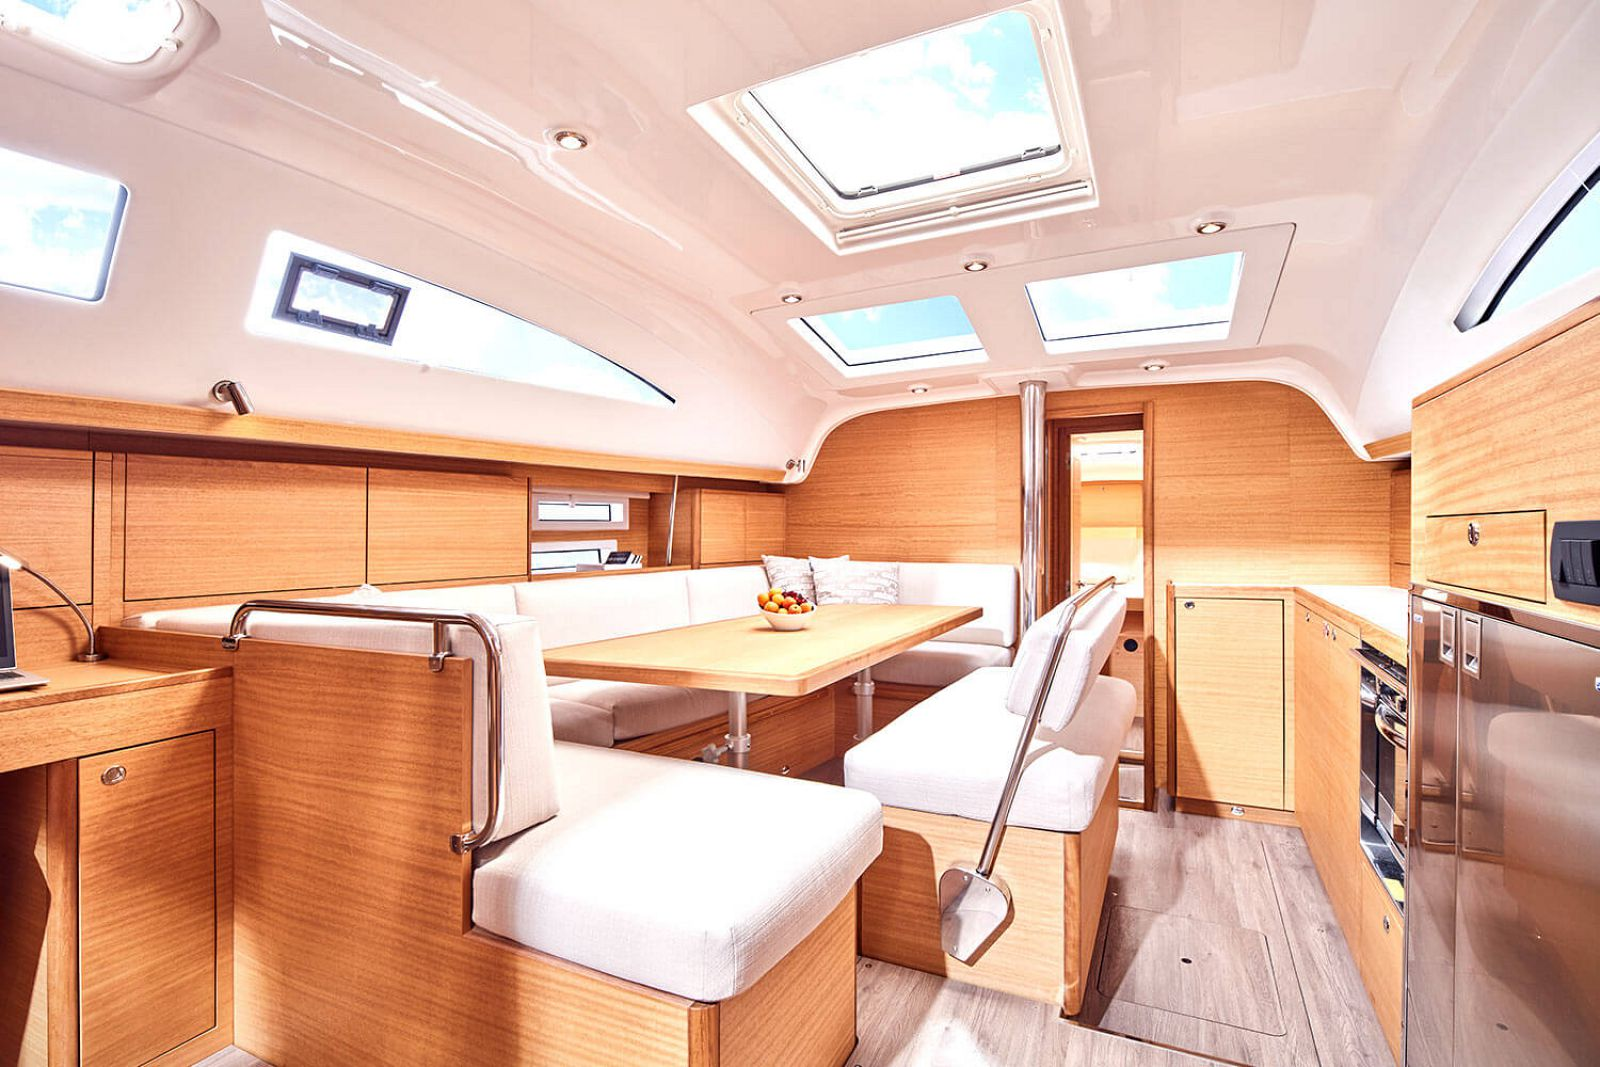 Interior of the Elan Impression 45.1